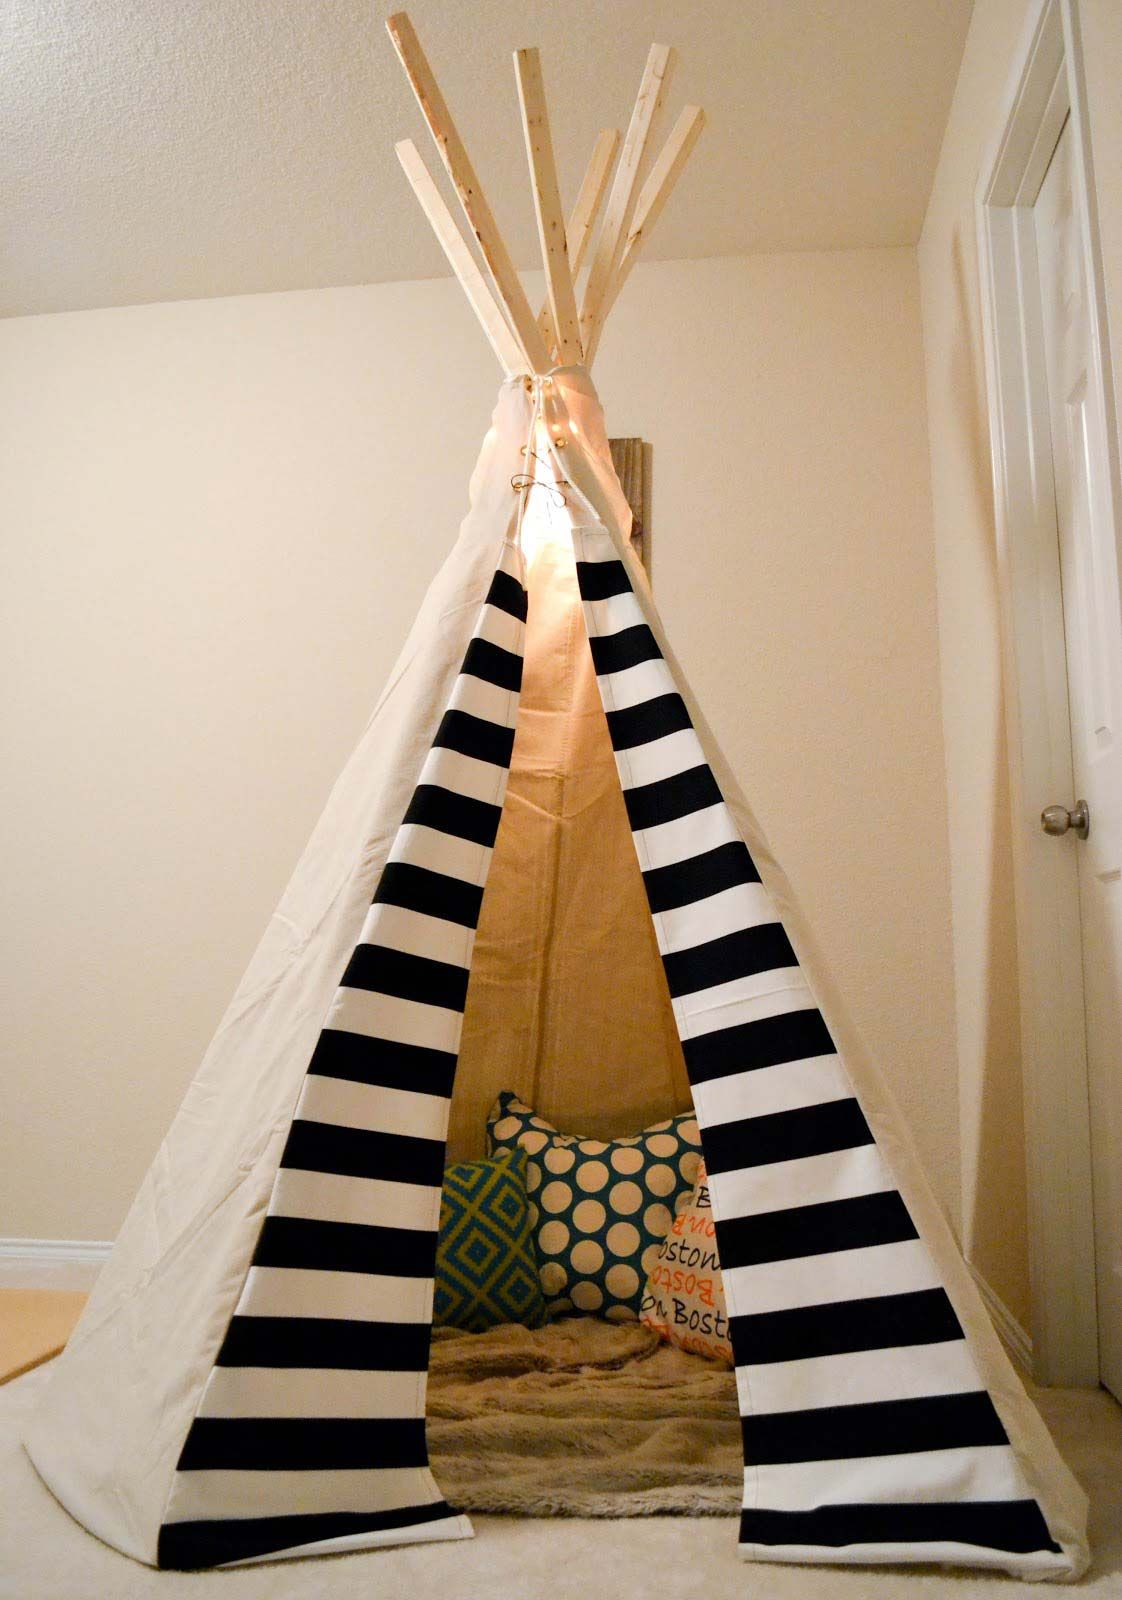 play teepee tutorials teepees tents pinterest. Black Bedroom Furniture Sets. Home Design Ideas